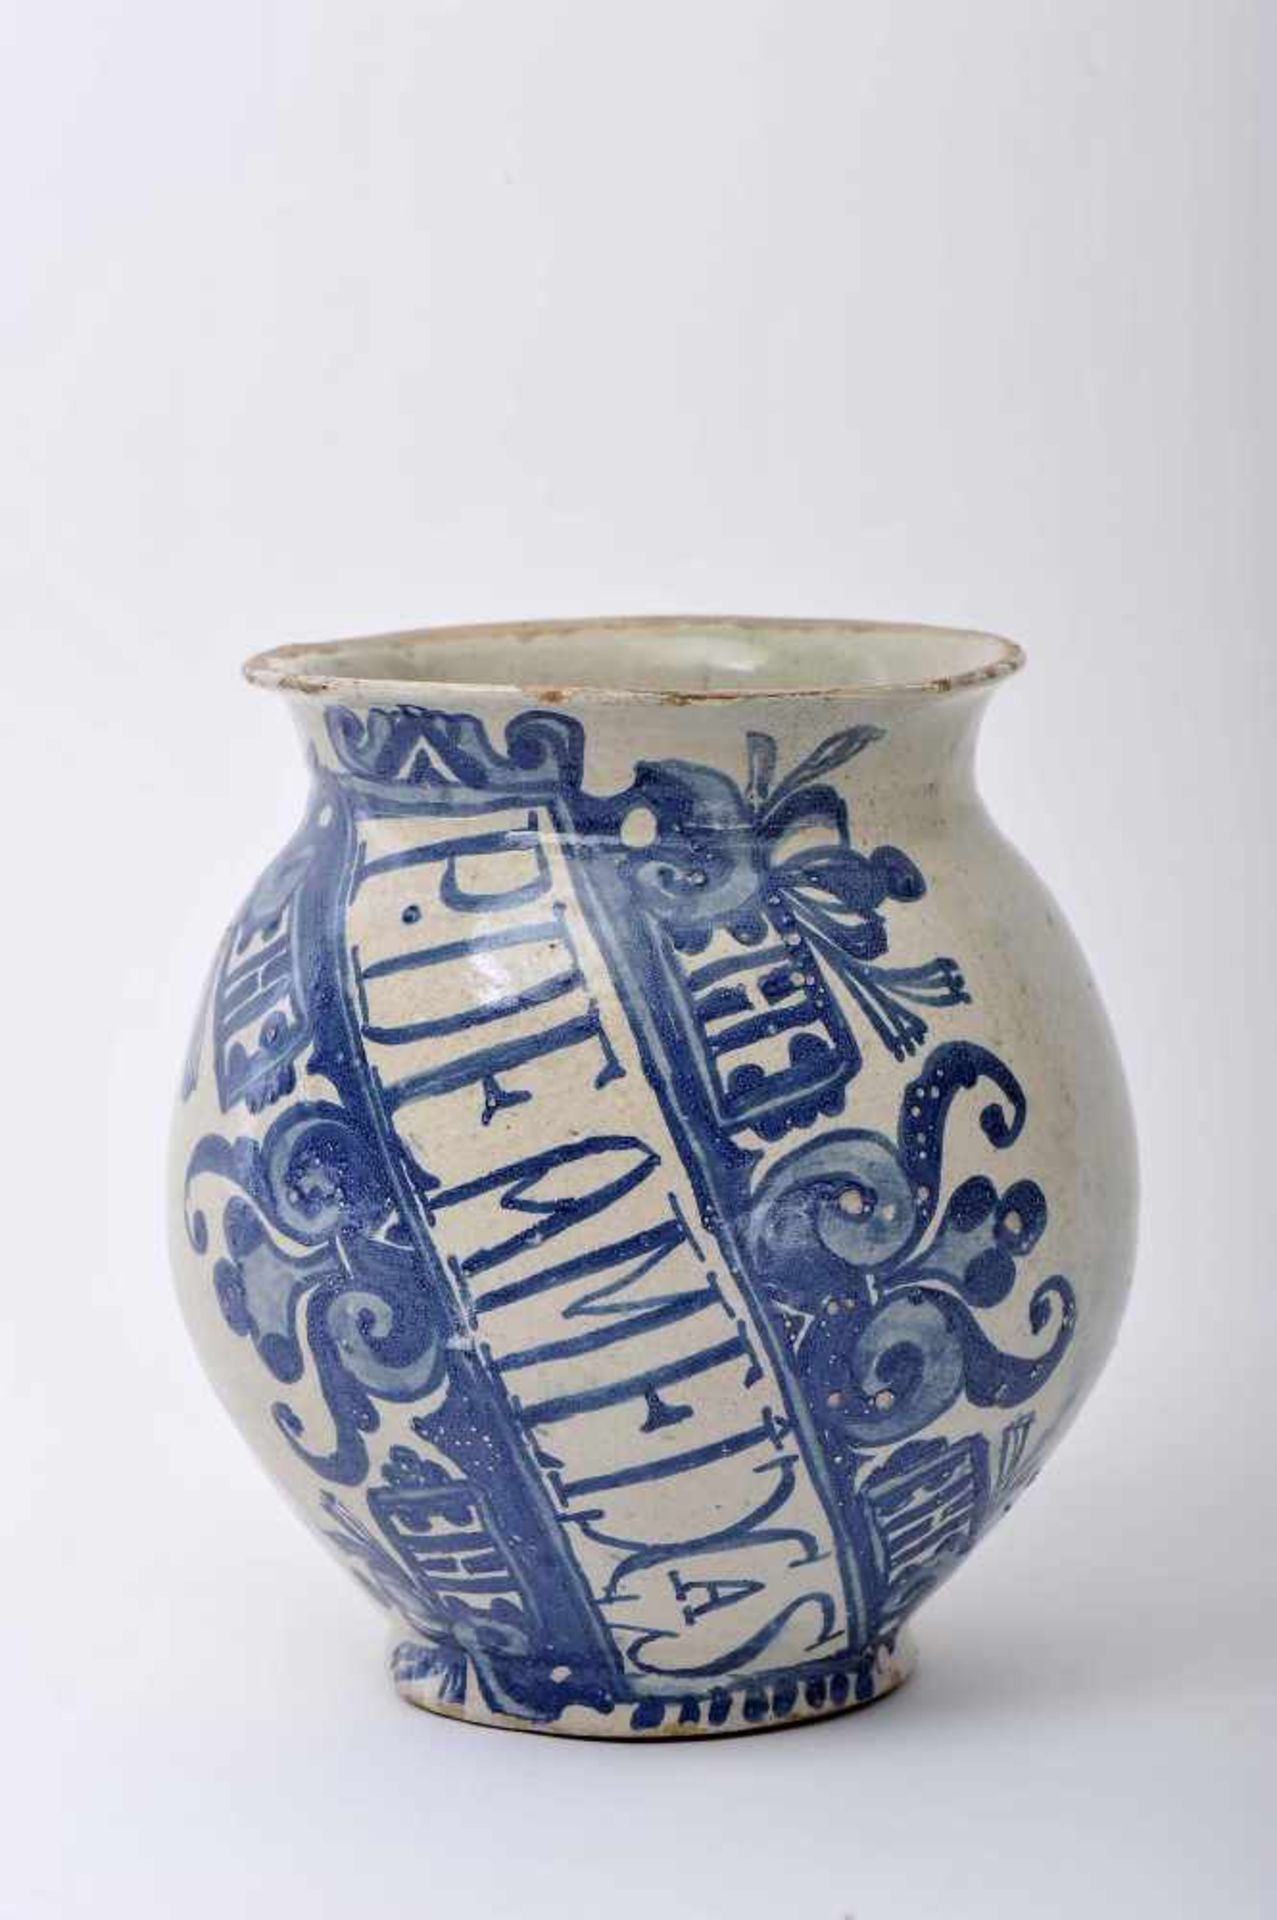 Los 61 - A Pharmacy PotA Pharmacy Pot, faience, blue «Barroque cartouche» decoration, motto with...